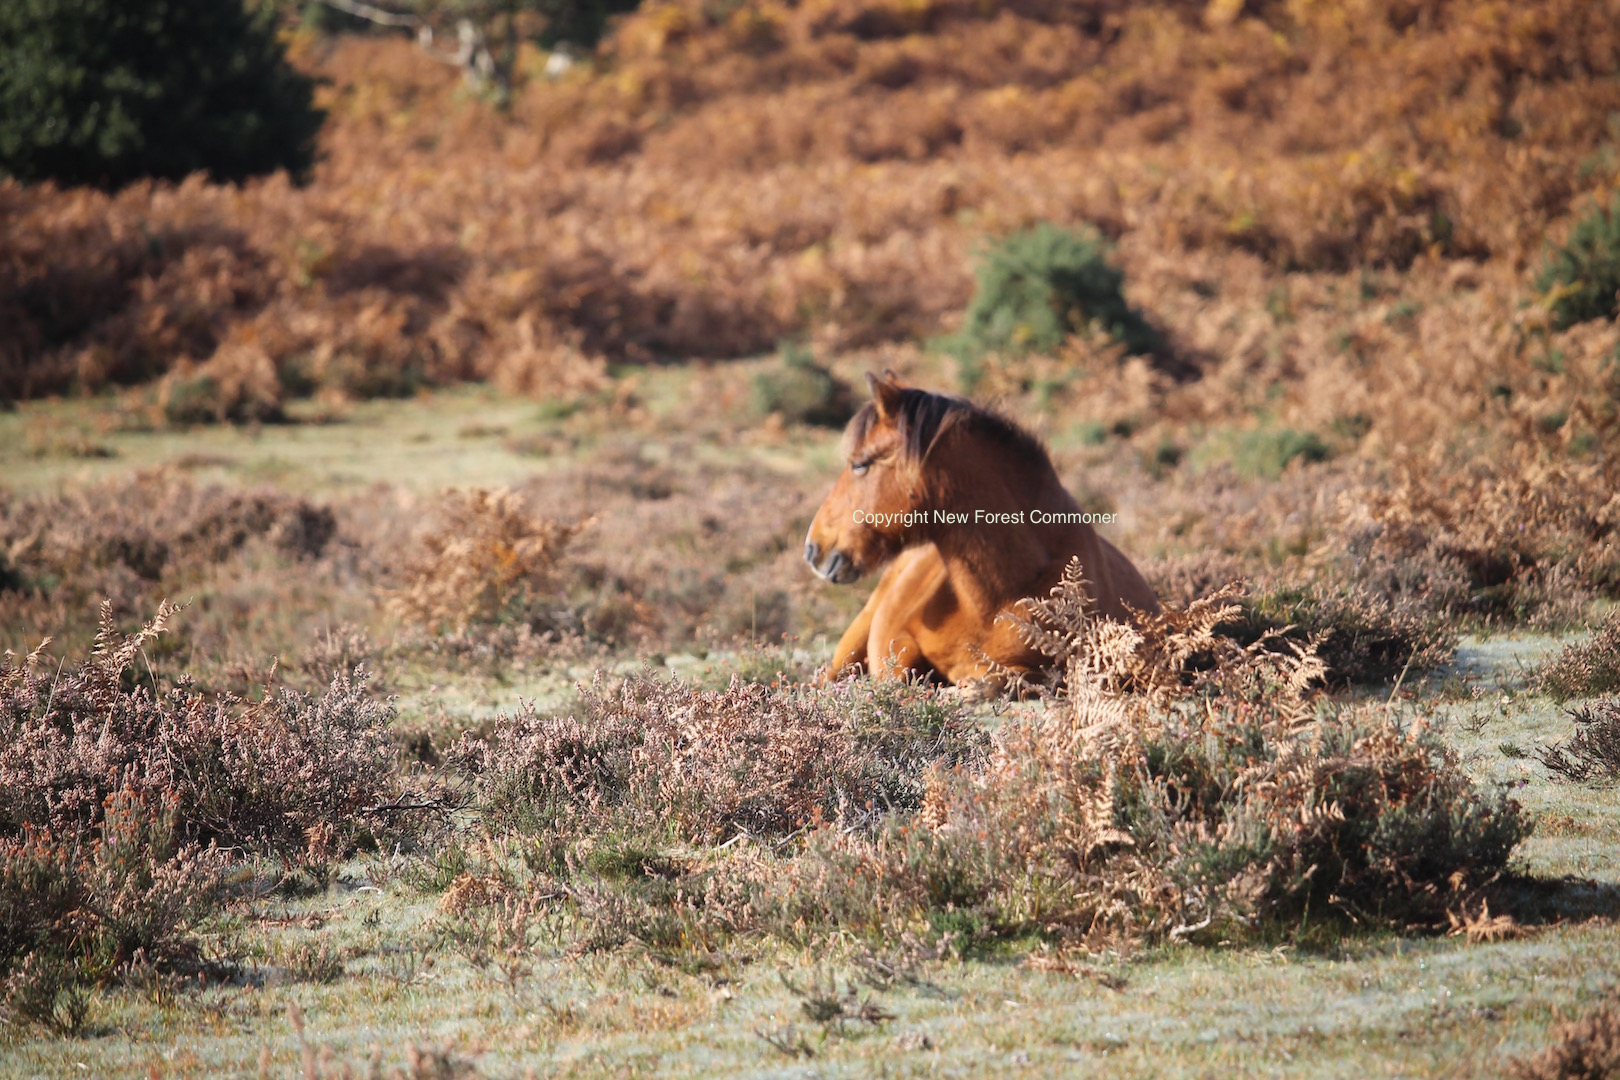 The ponies are well-adapted to living on the New Forest, which includes  good camouflage.